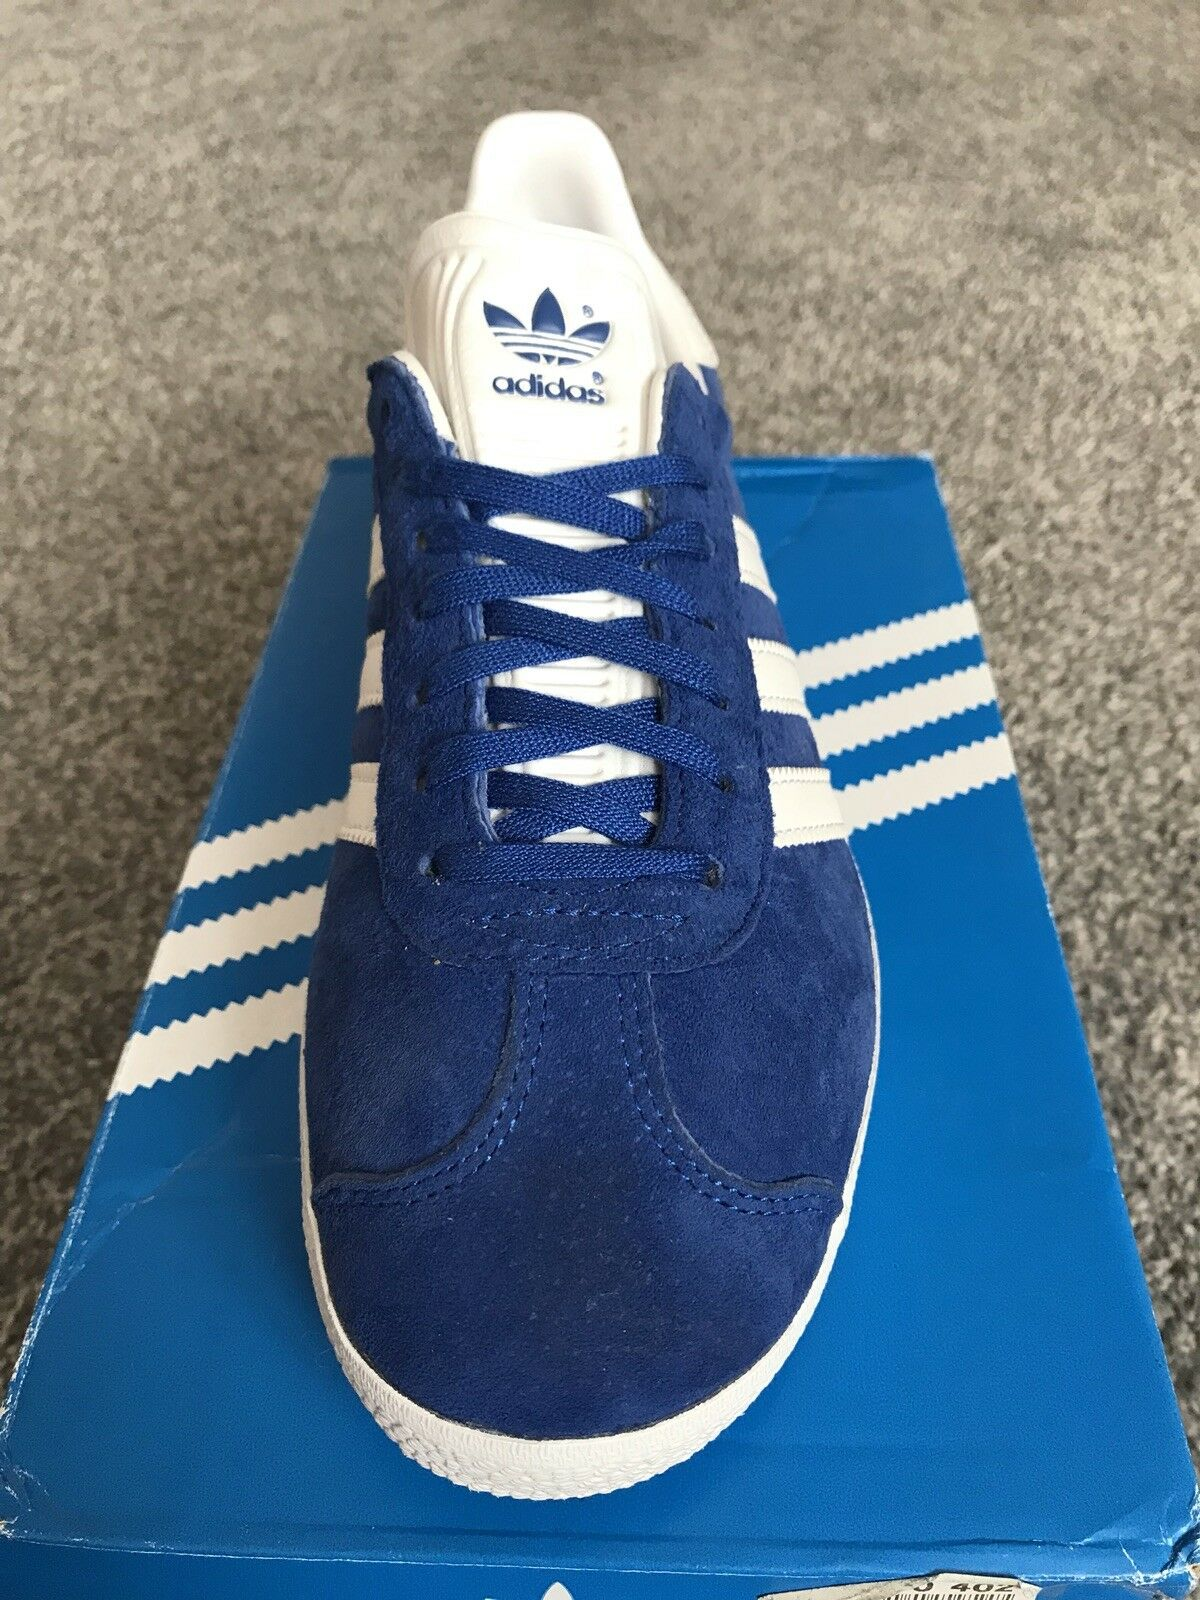 ADIDAS Trainers, Gazelle Women's Trainers, ADIDAS Blue - Size 4.5 8d85f0